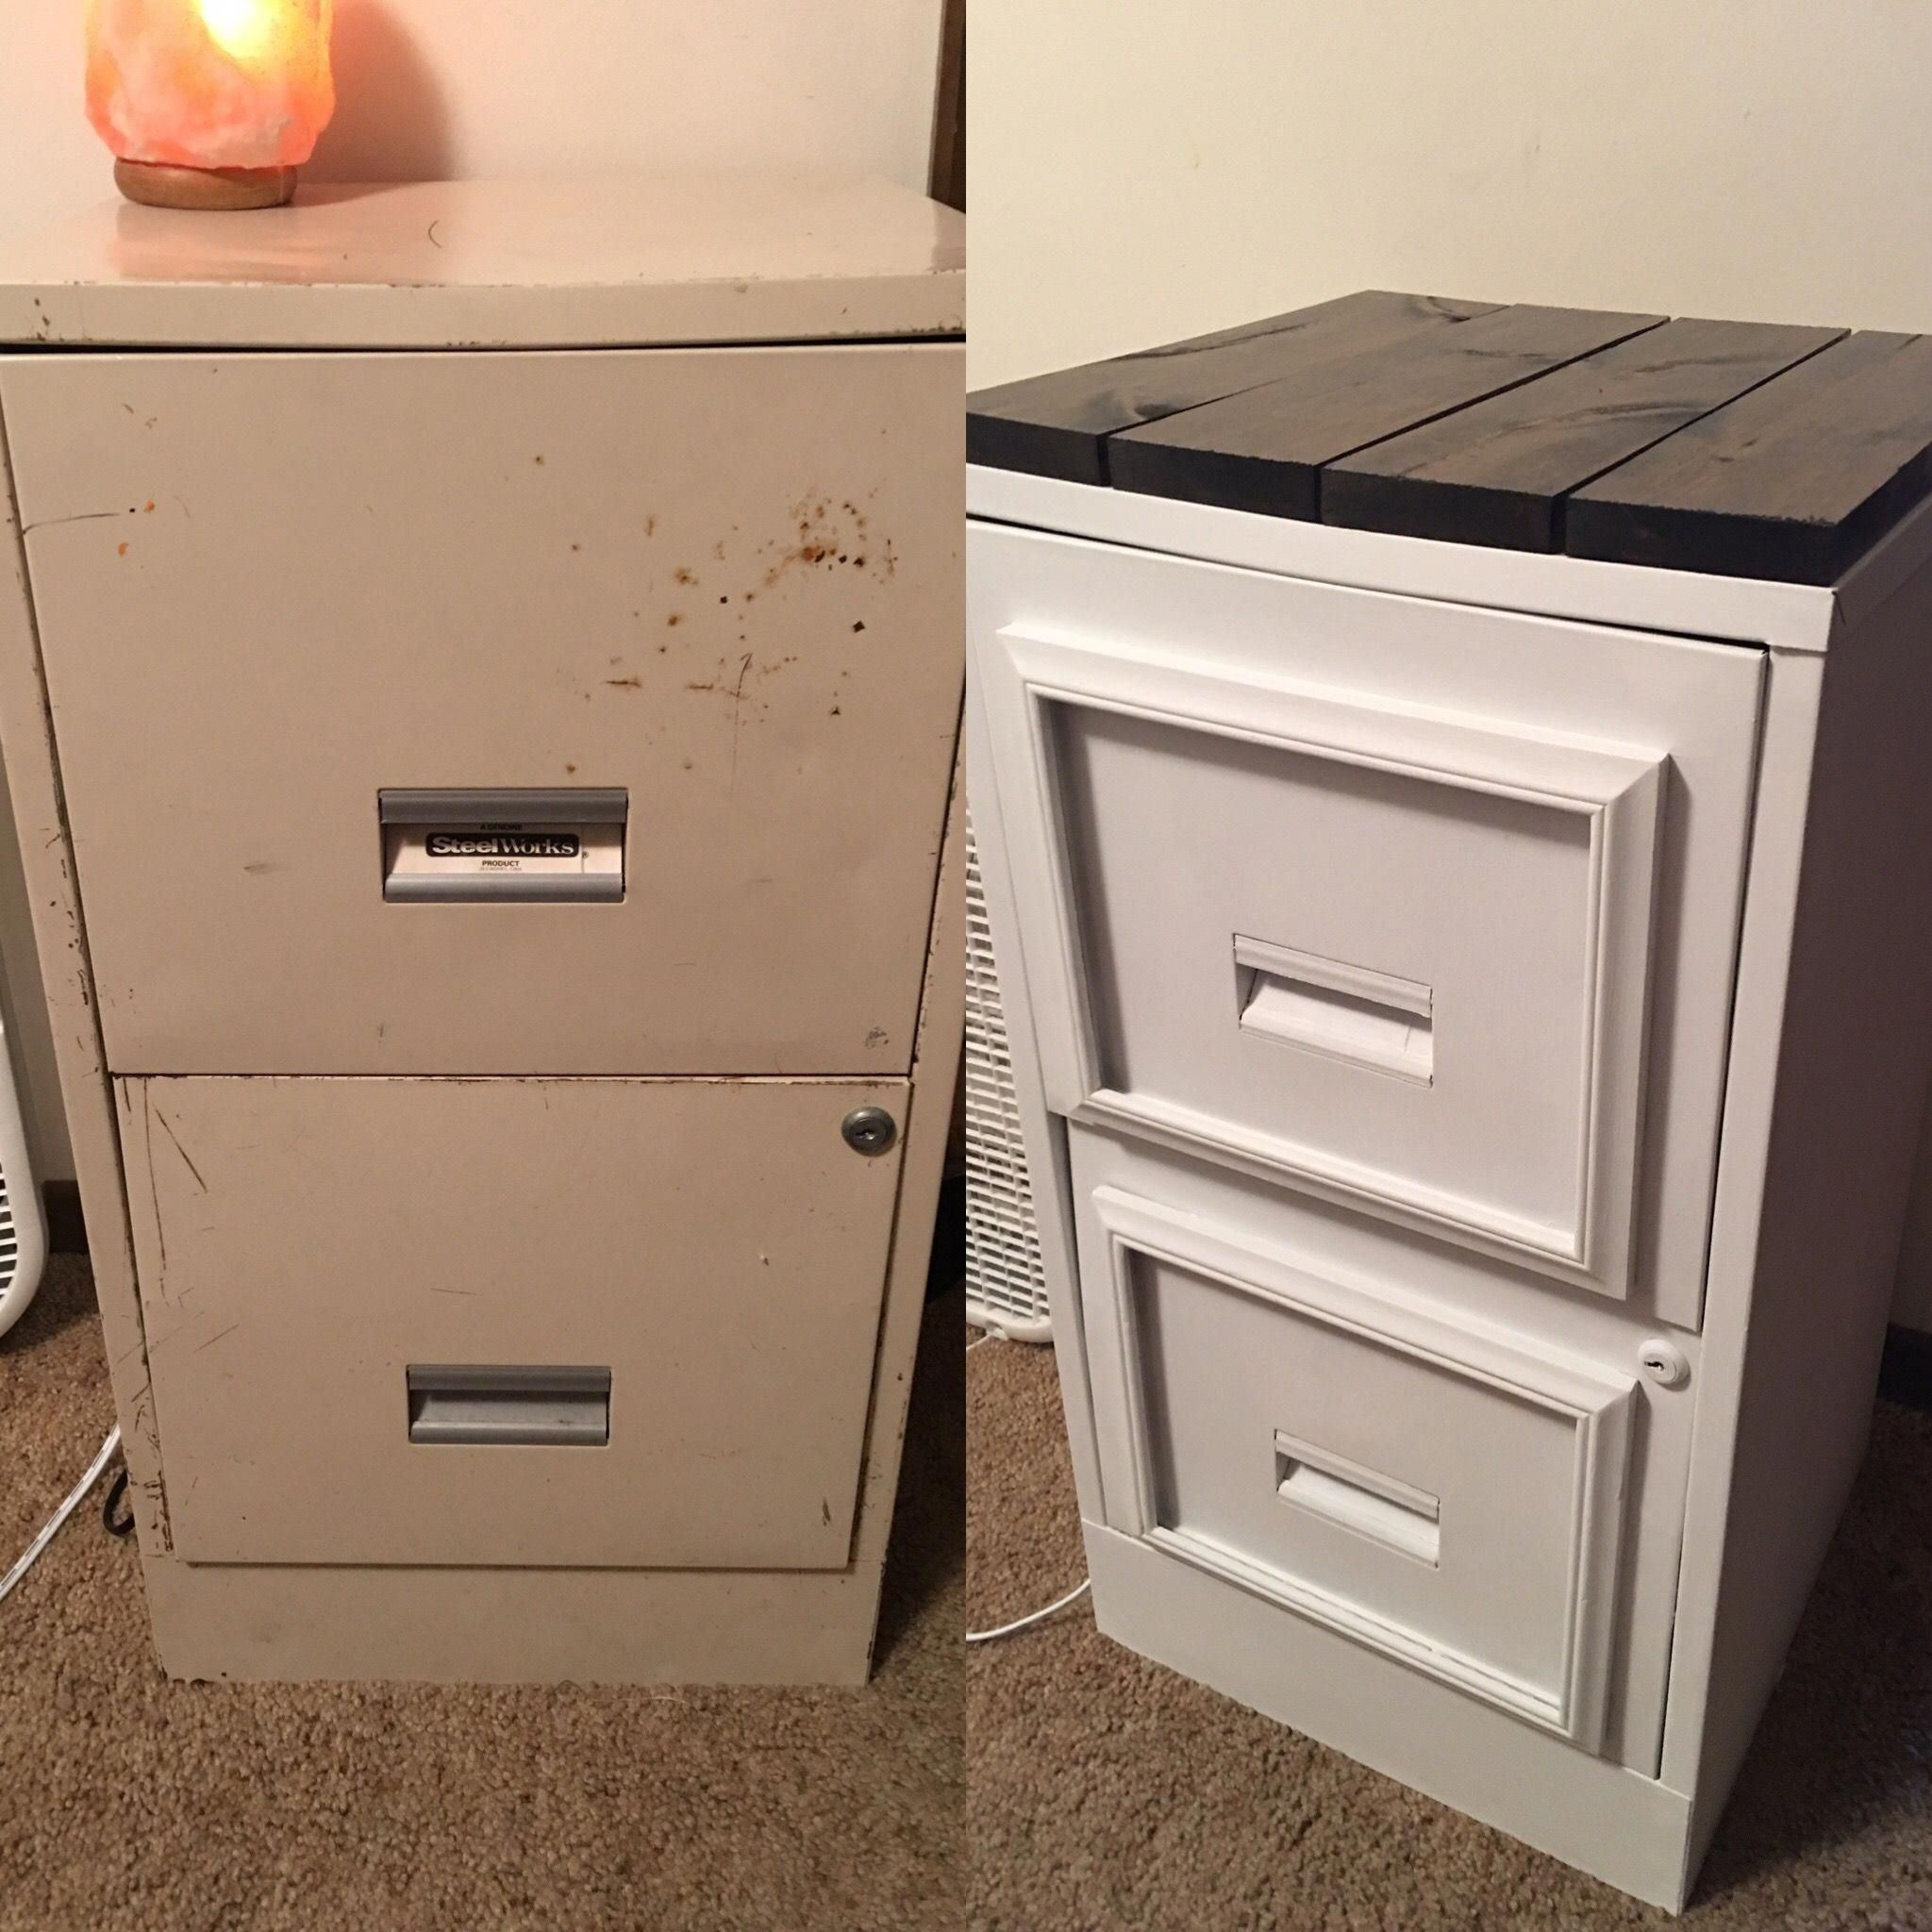 Www Furnituredeals Com: Filing Cabinet Makeover. Waverly Chalk Paint From Walmart